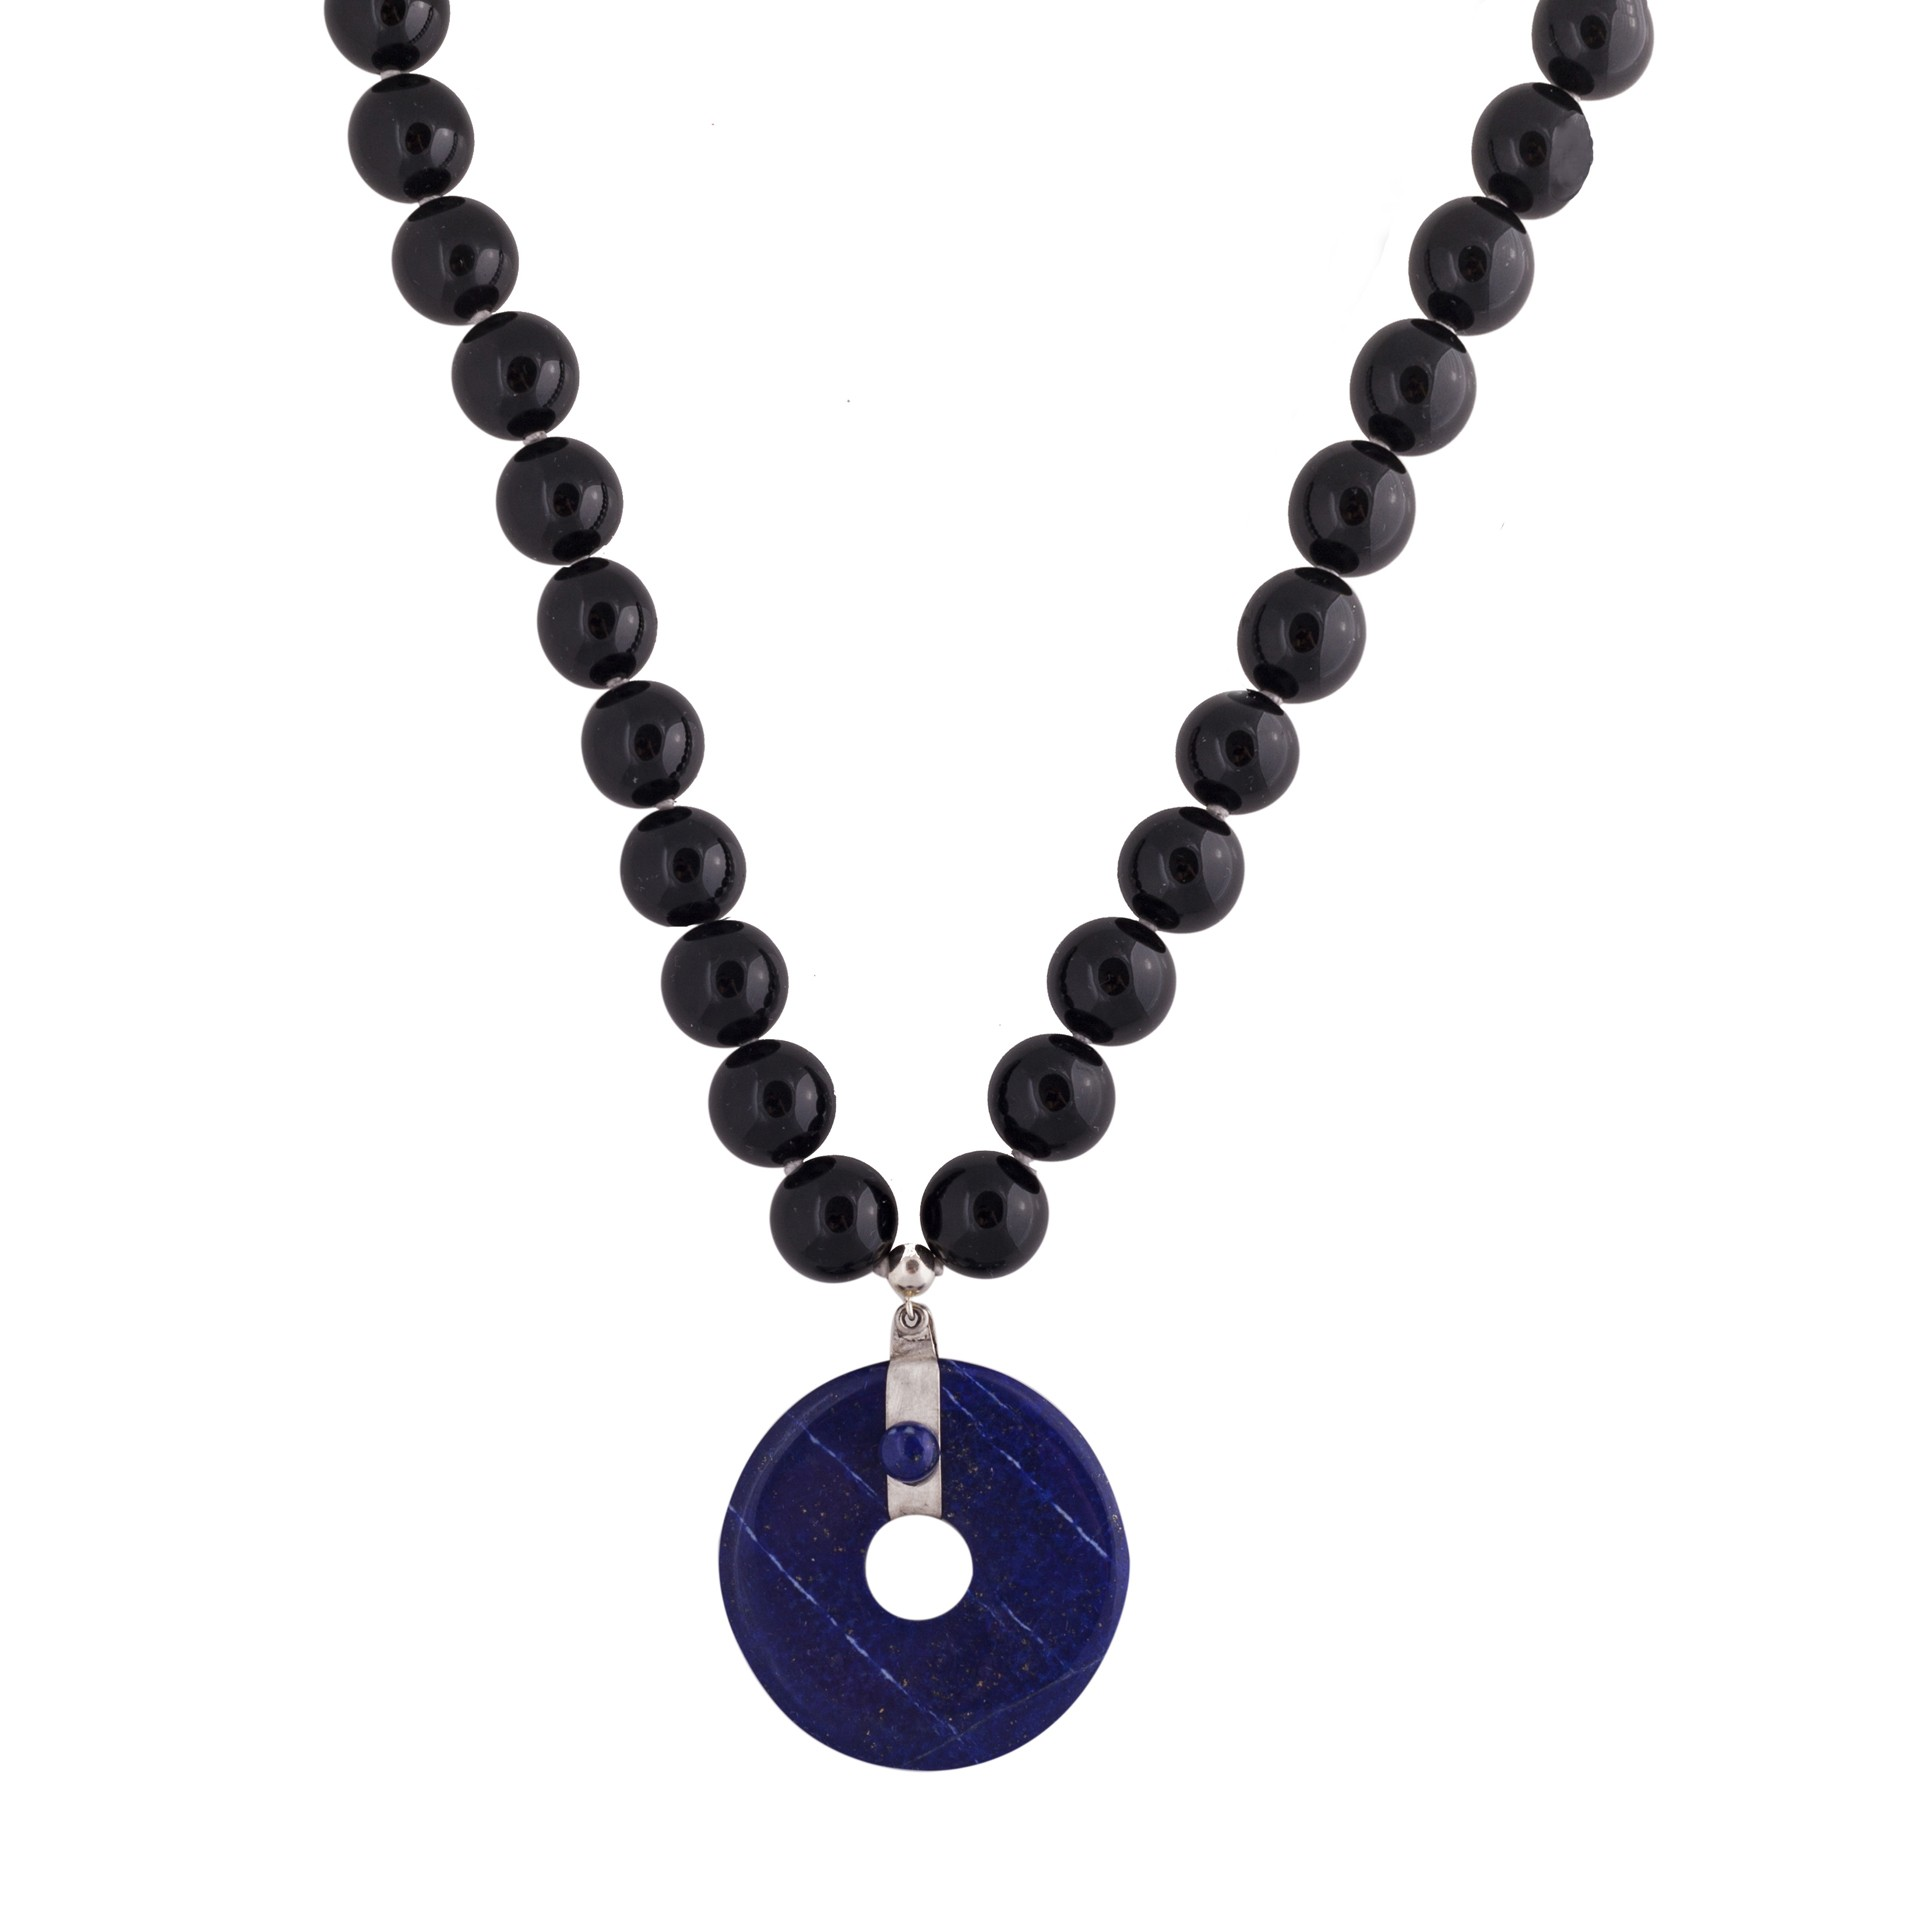 Blue Lapis stone necklace